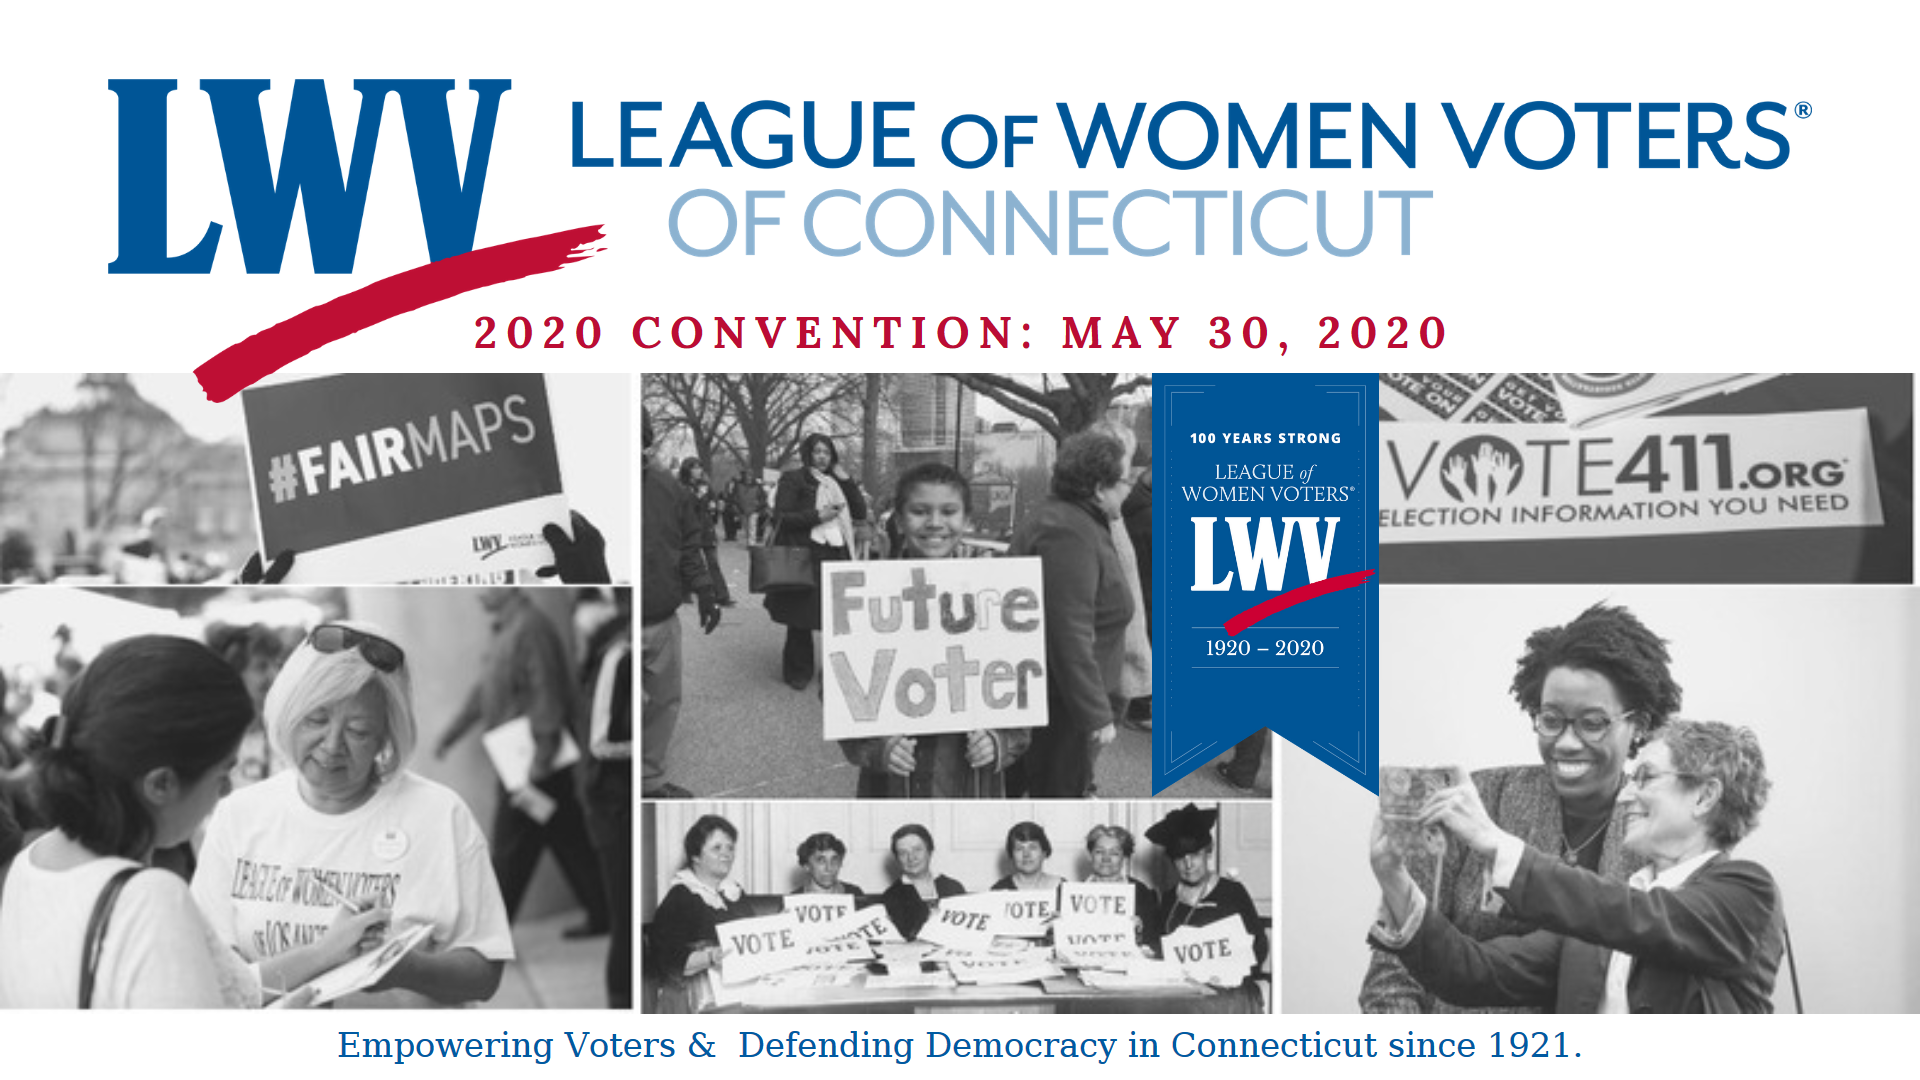 LWVCT 2020 Convention Banner Image